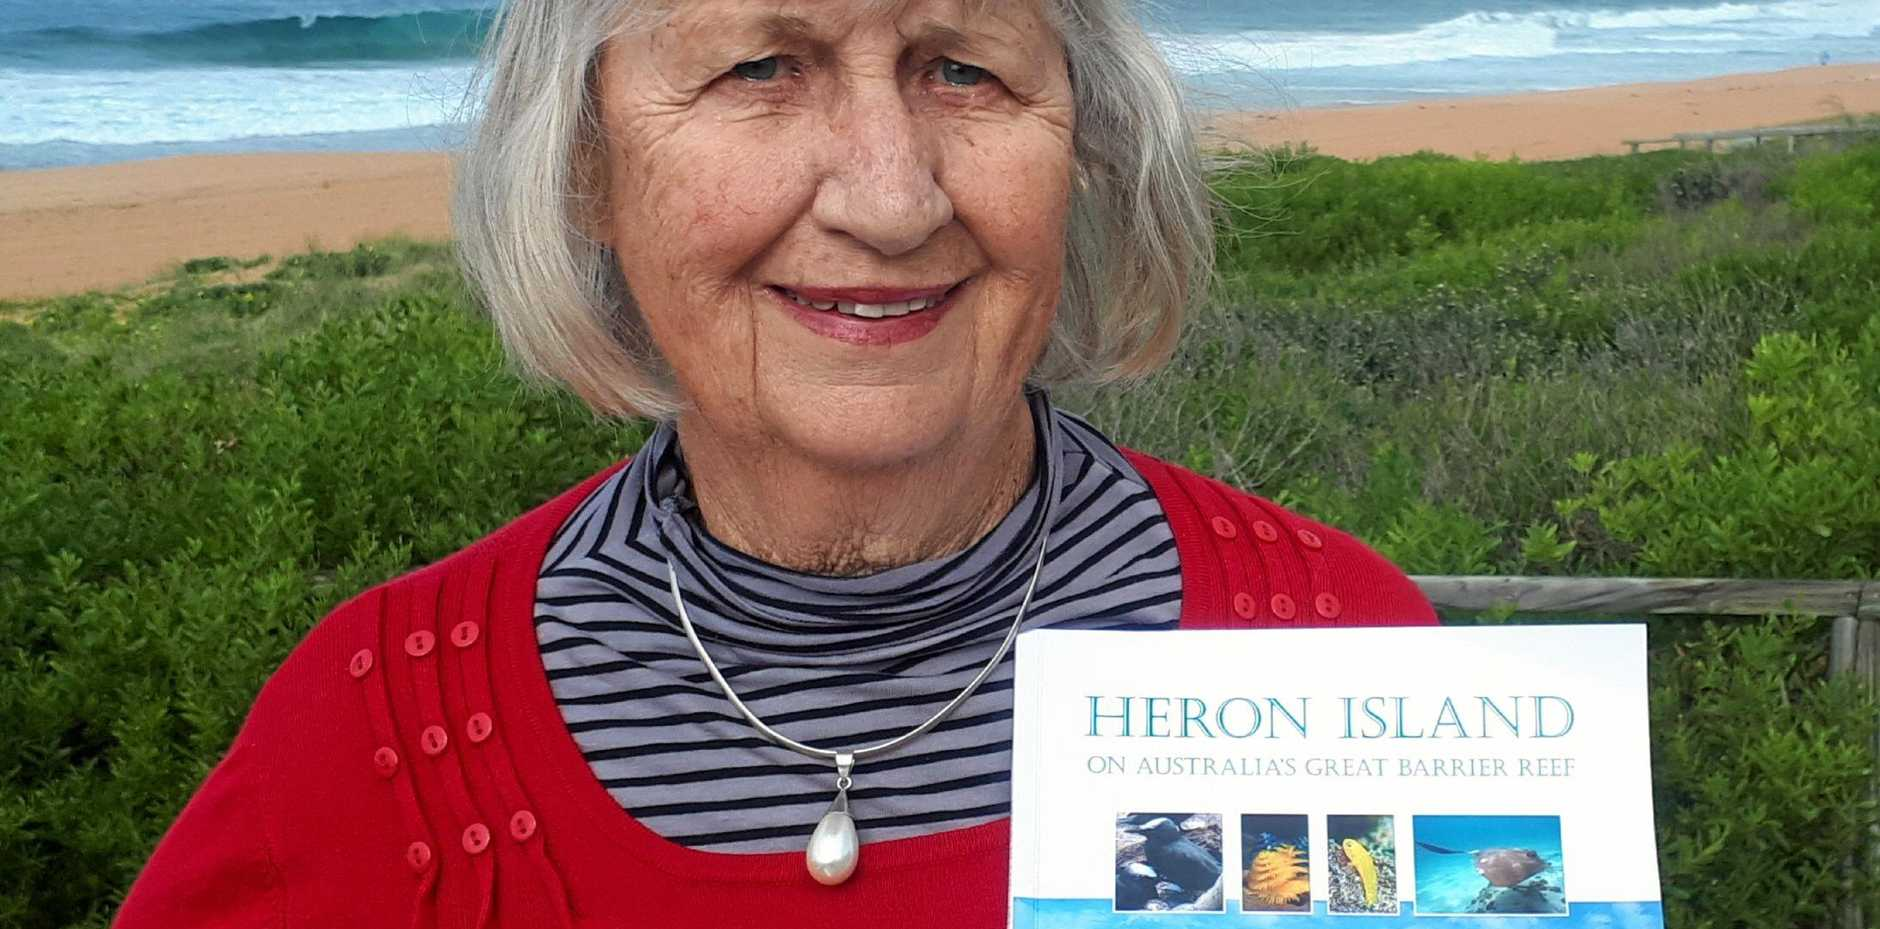 NEW BOOK: Author Jill Bruce with the cover of her new book,  Heron Island on Australia's Great Barrier Reef .